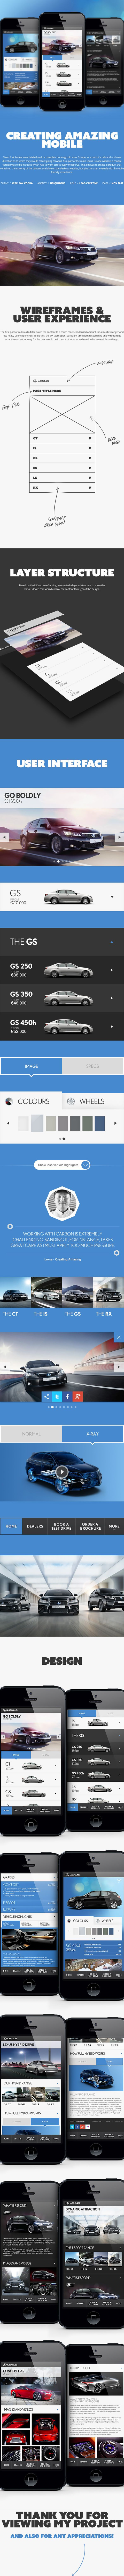 Lexus 'Creating Amazing' Mobile by Sean Hobman, via Behance